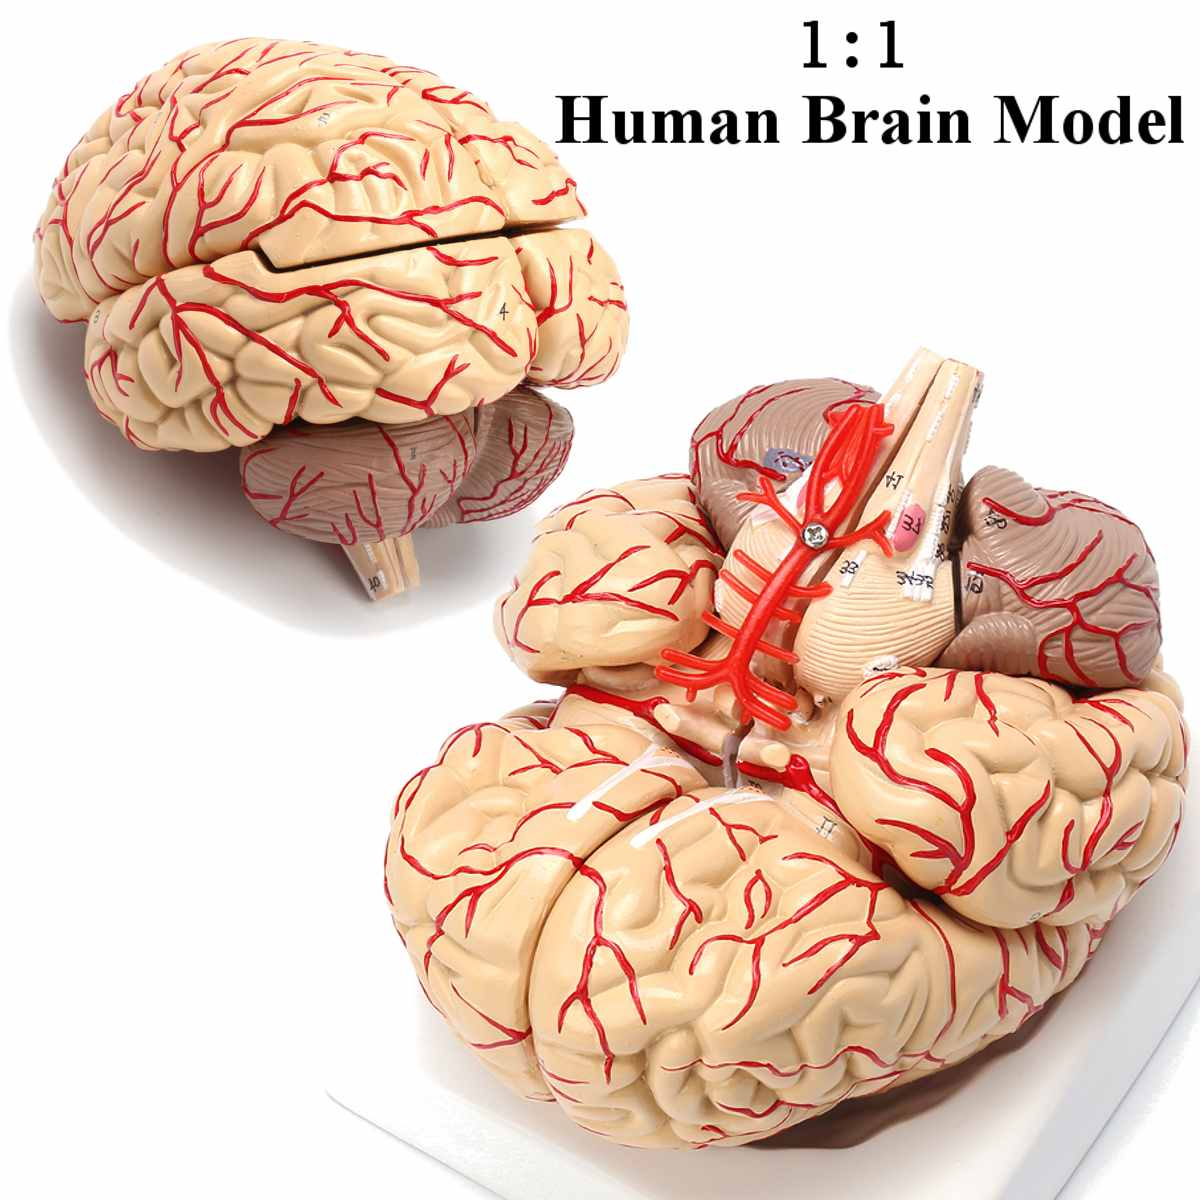 1:1 Life Size Human Brain Model With Arteries Anatomical Medical Organ Anatomy Model School Educational Medical Science Teaching1:1 Life Size Human Brain Model With Arteries Anatomical Medical Organ Anatomy Model School Educational Medical Science Teaching